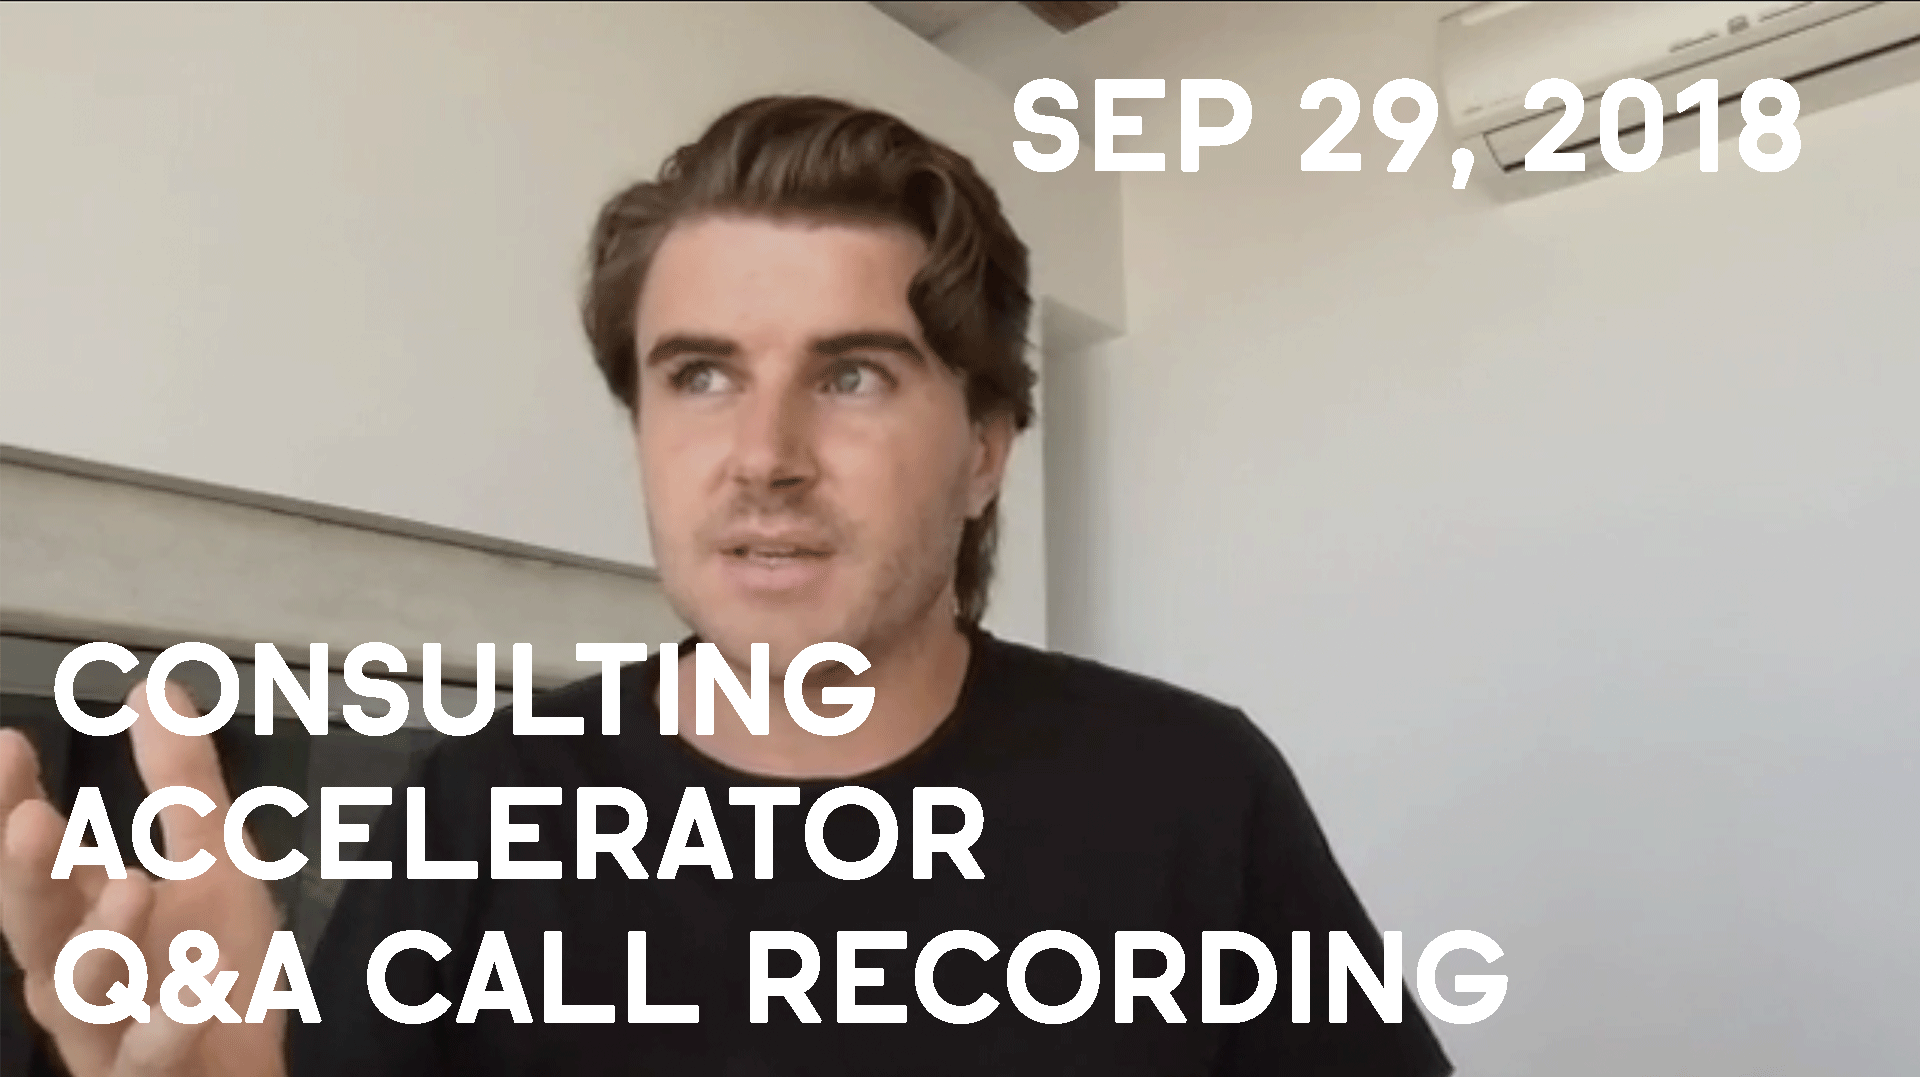 Consulting Accelerator Livestream Q&A, September 29th, 2018